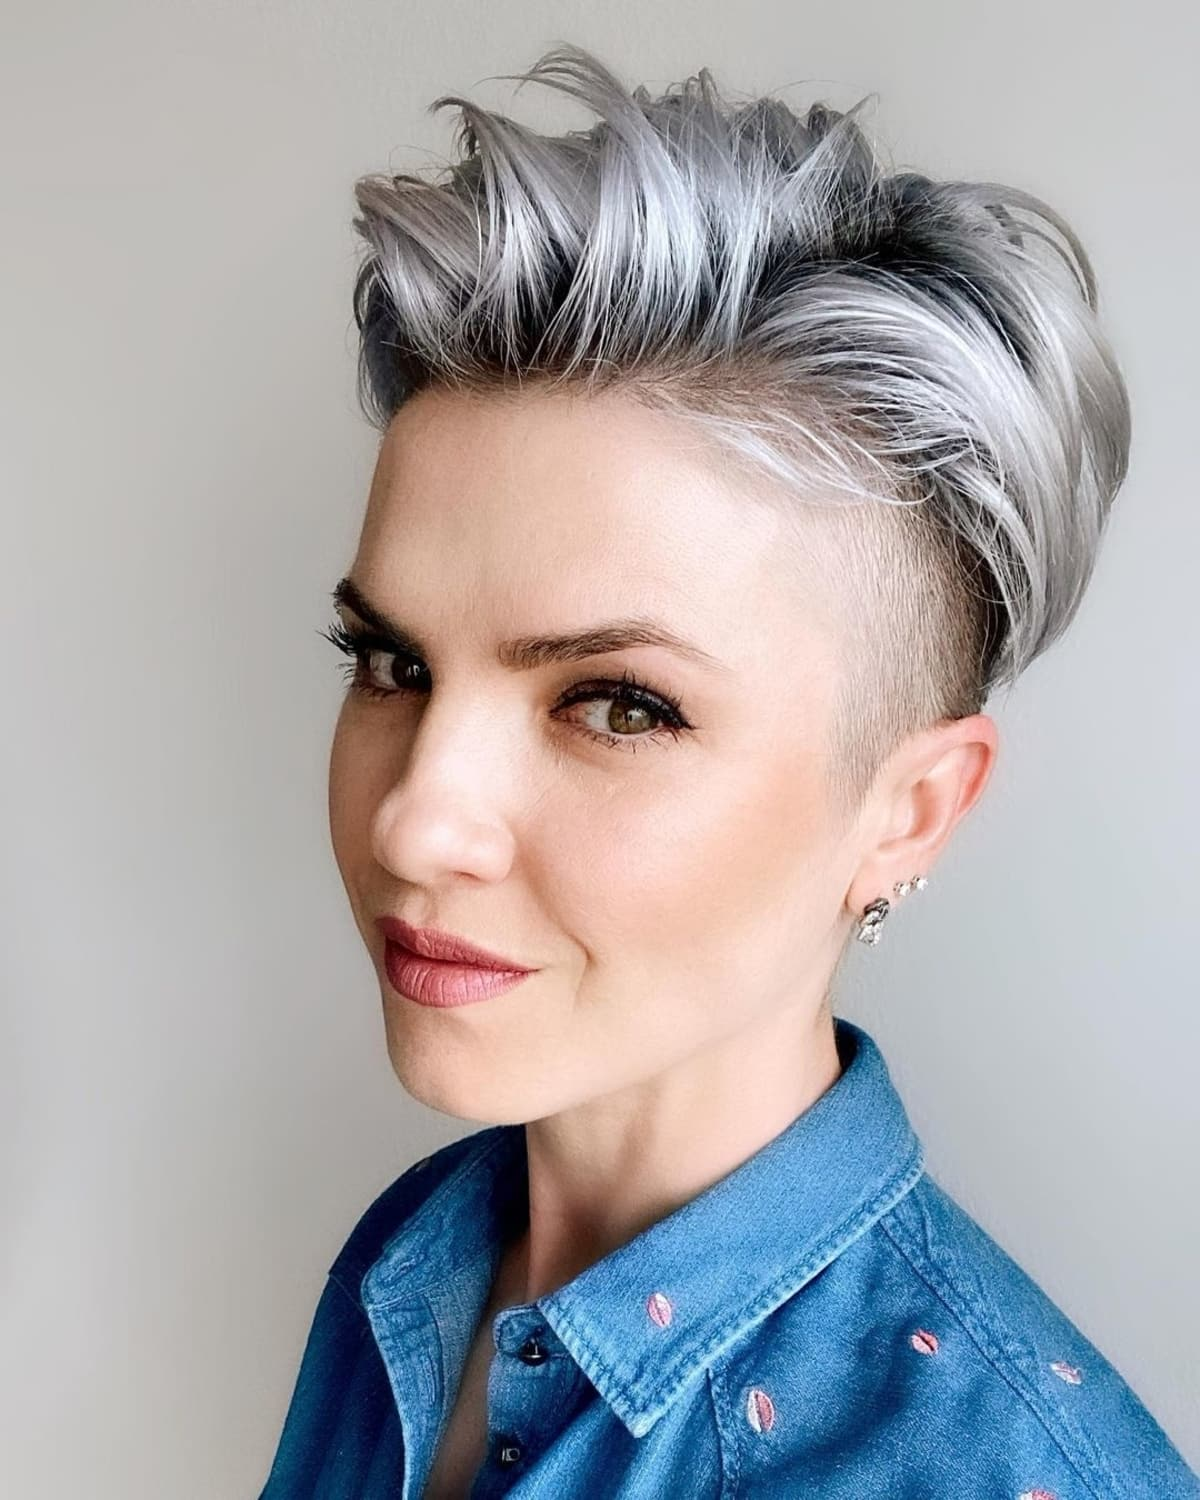 The 21 Best Pixie Cuts for Thick Hair